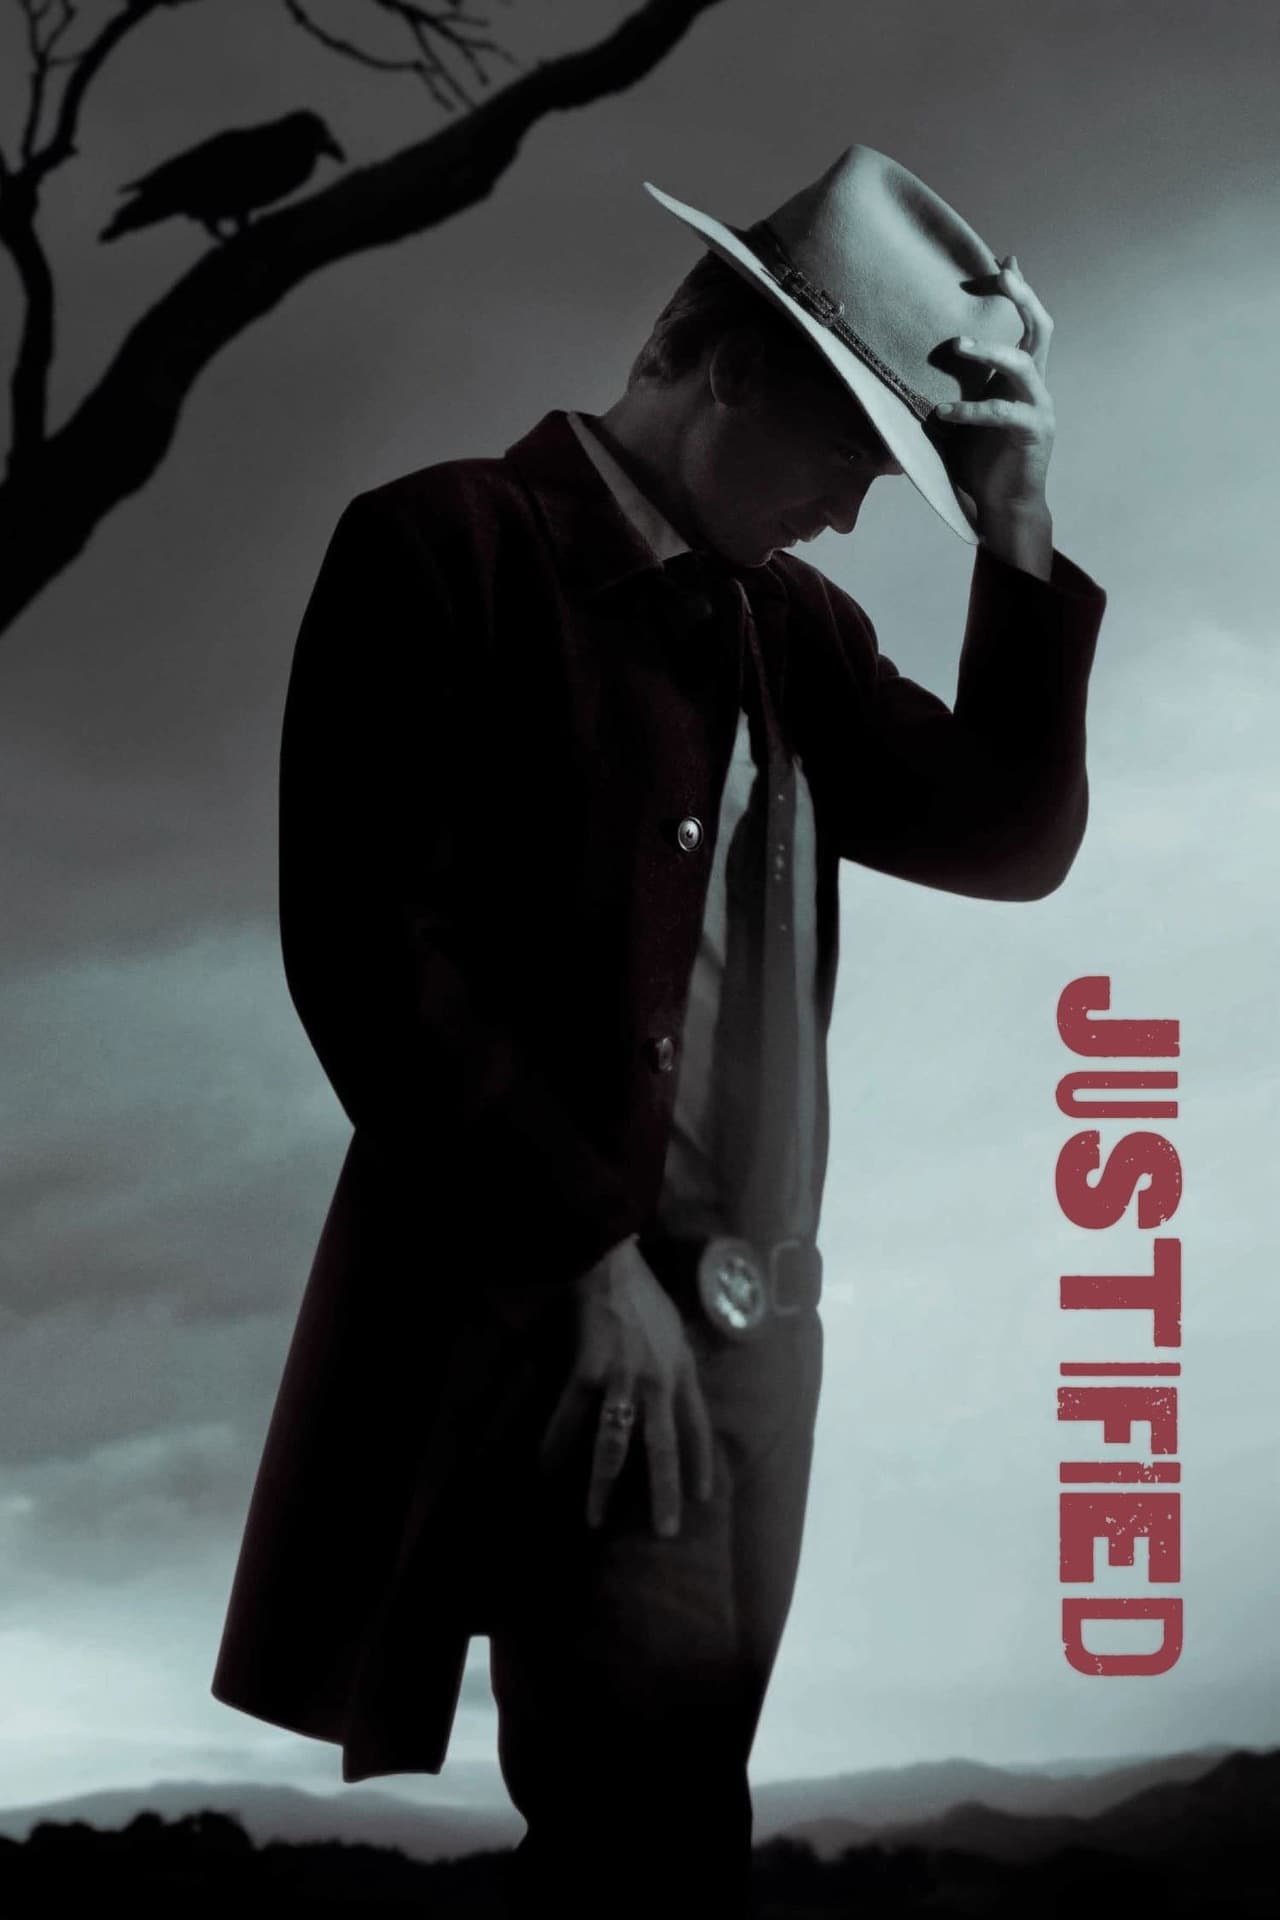 Justified (season 1)